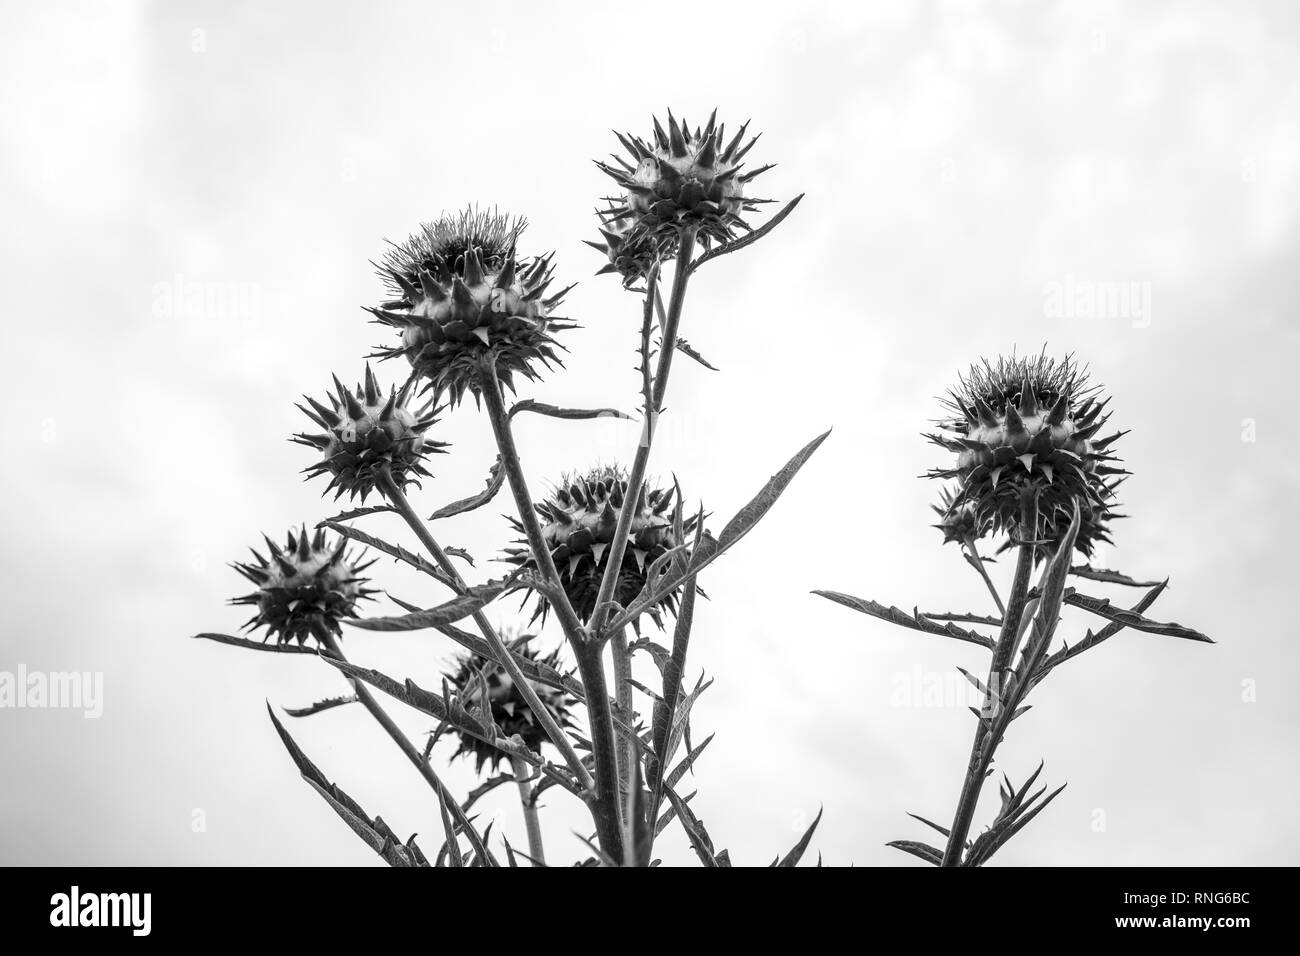 Artichoke flower seen from below - black and white - Stock Image